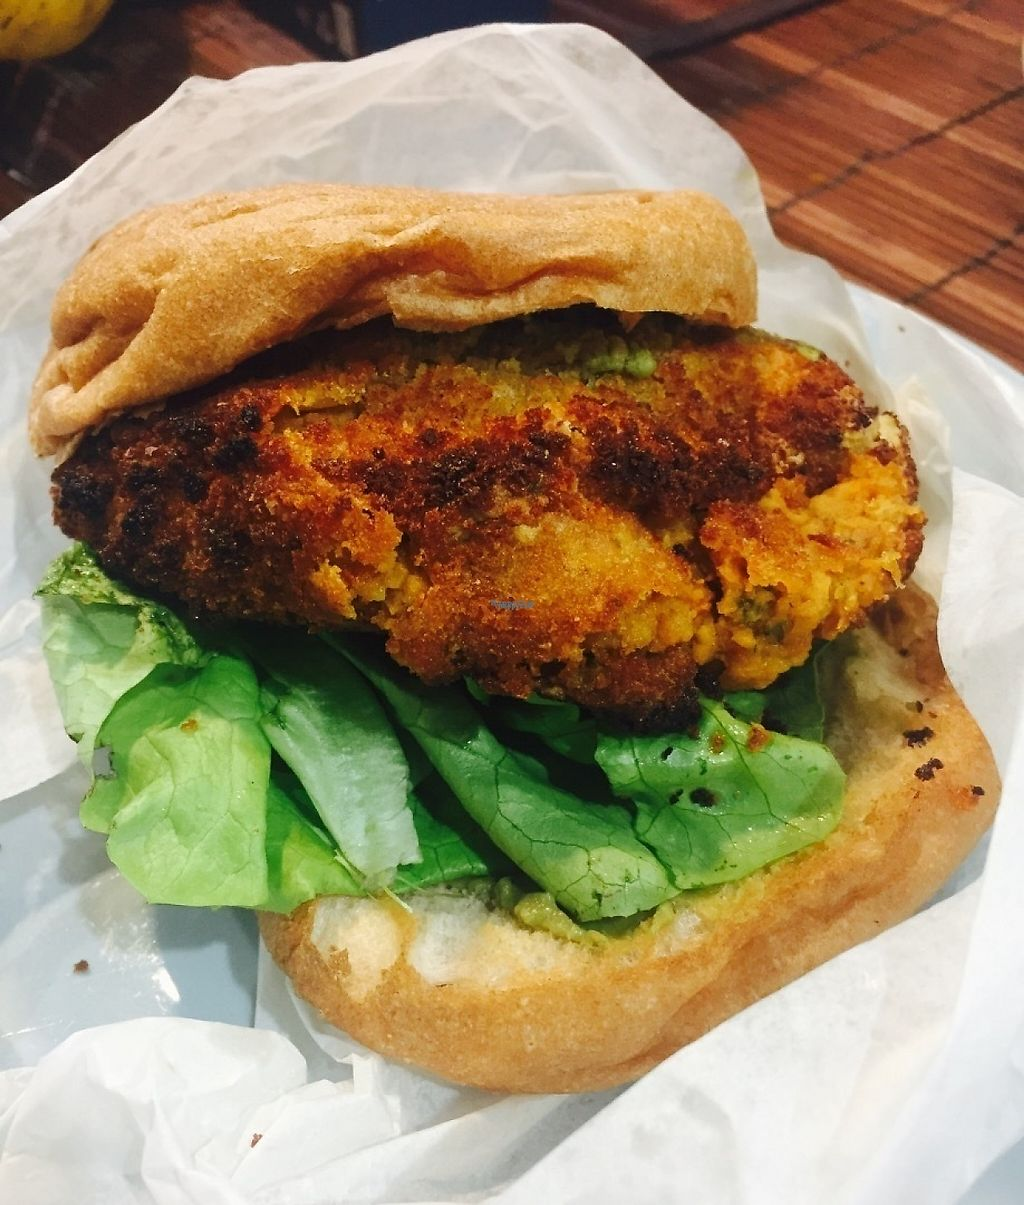 """Photo of Morley's Bar & Bistro  by <a href=""""/members/profile/karlaess"""">karlaess</a> <br/>Hey Man No Meat! Burger <br/> November 27, 2016  - <a href='/contact/abuse/image/78641/195012'>Report</a>"""